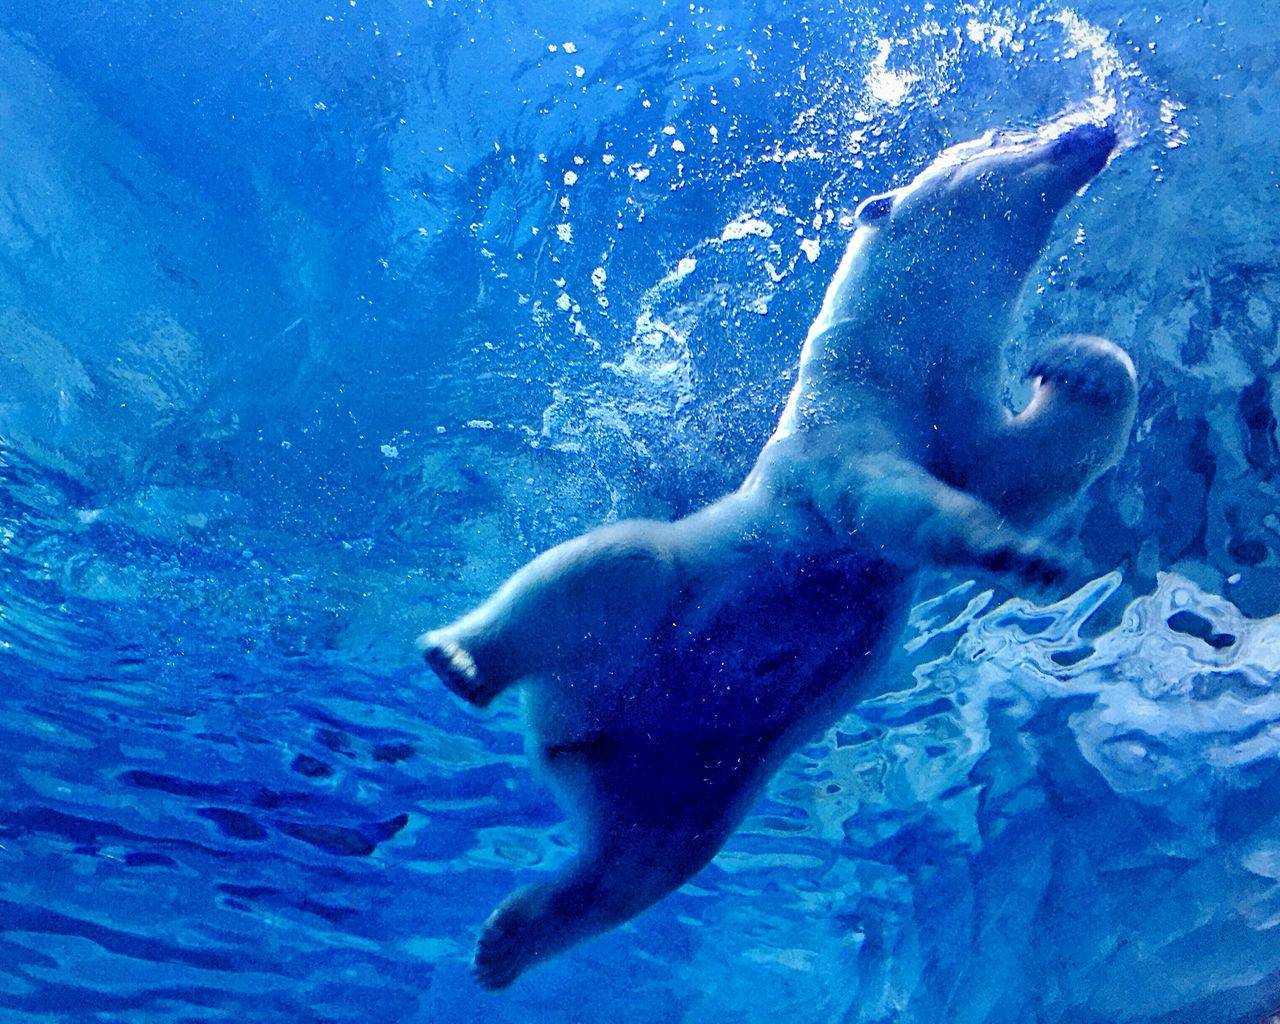 Chimelong Polar Bear Bear Ocean Animals Zoo Blue